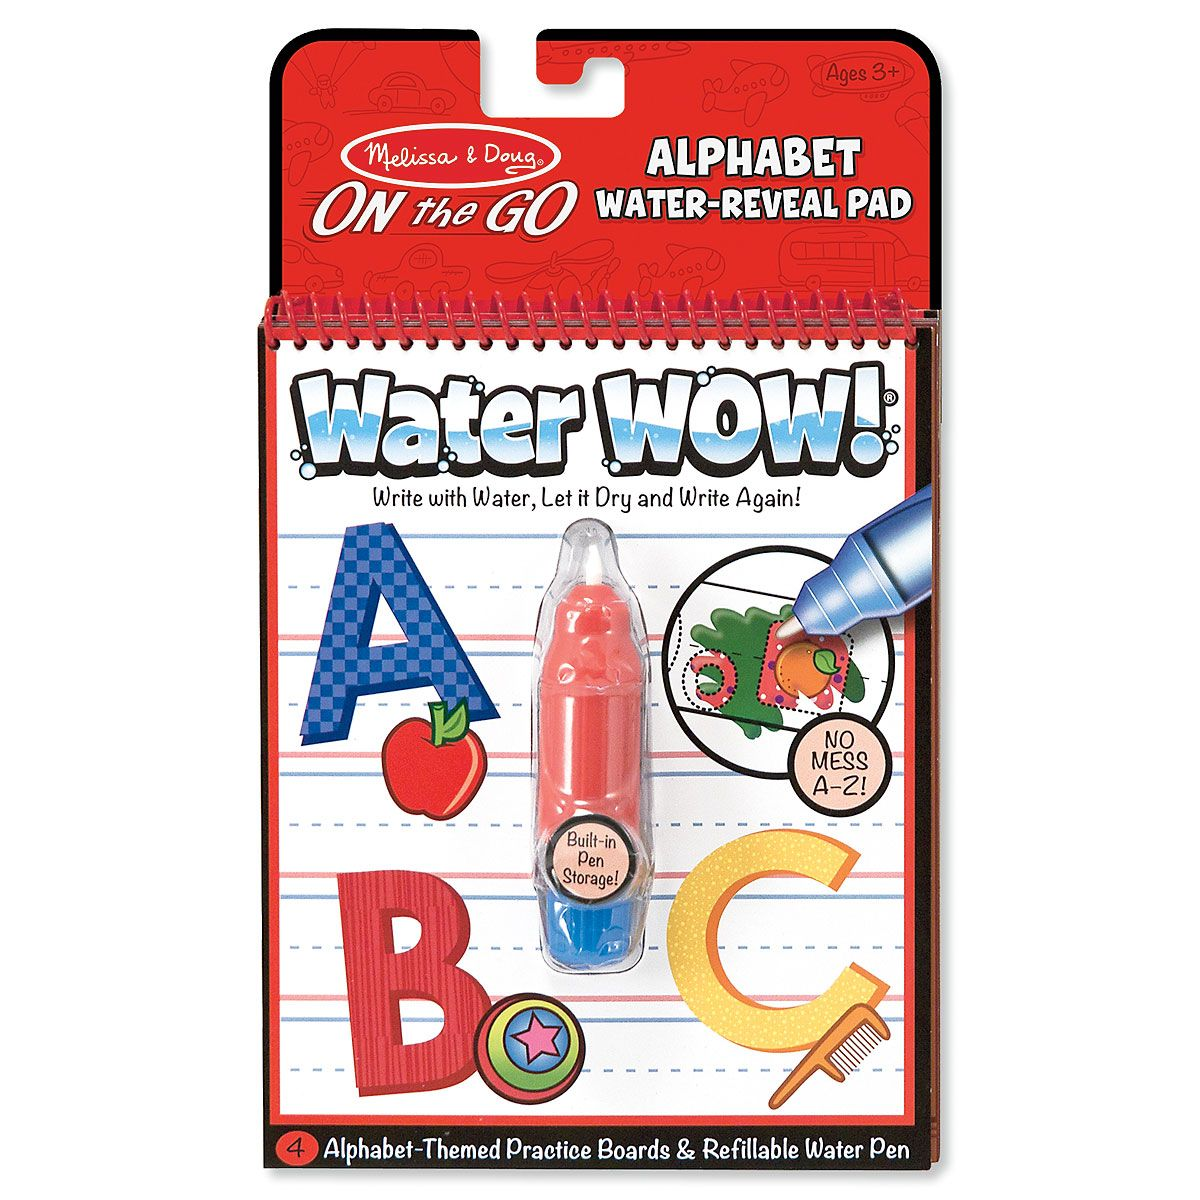 Water Wow! by Melissa & Doug®